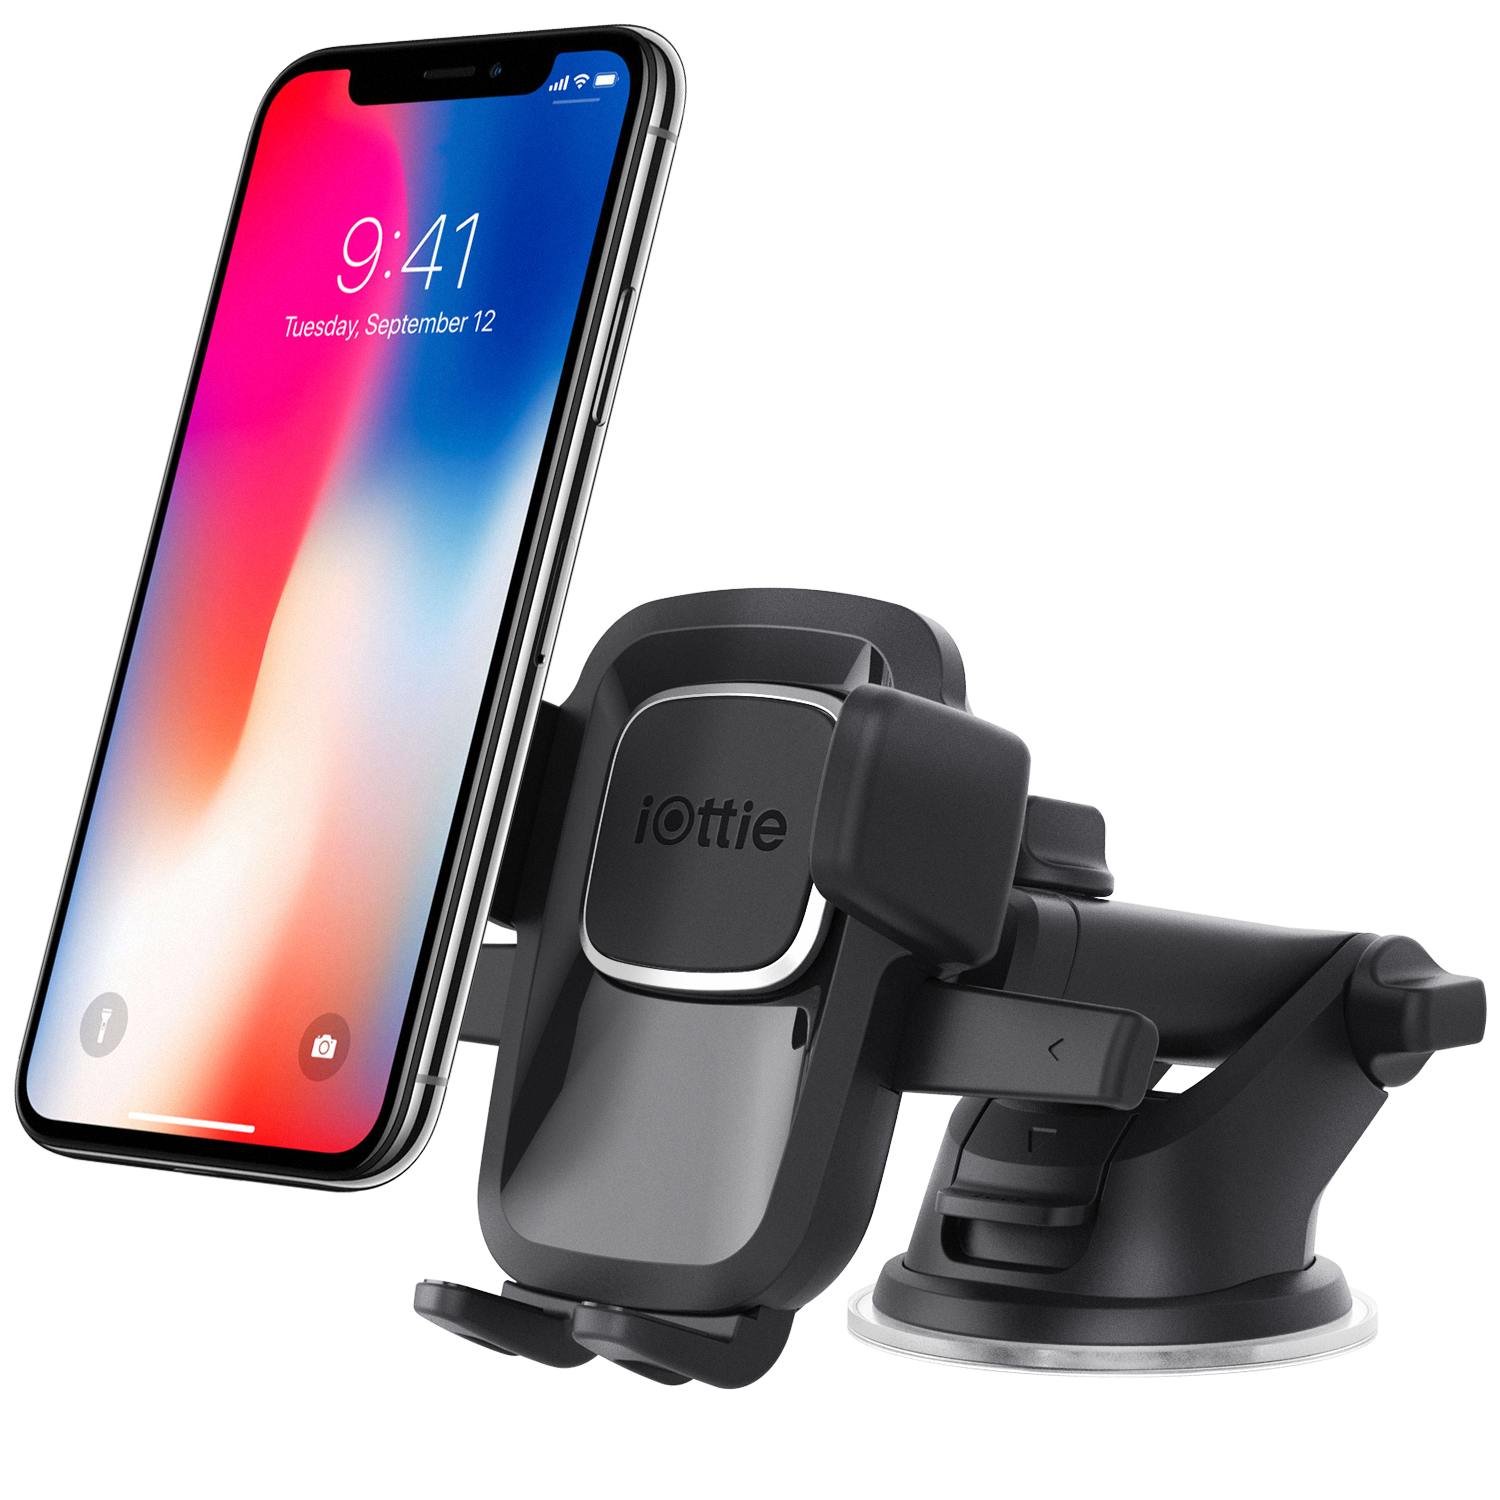 Univerzální držák do auta pro iPhone - iOttie, Easy One Touch 4 Dash & Windshield Mount